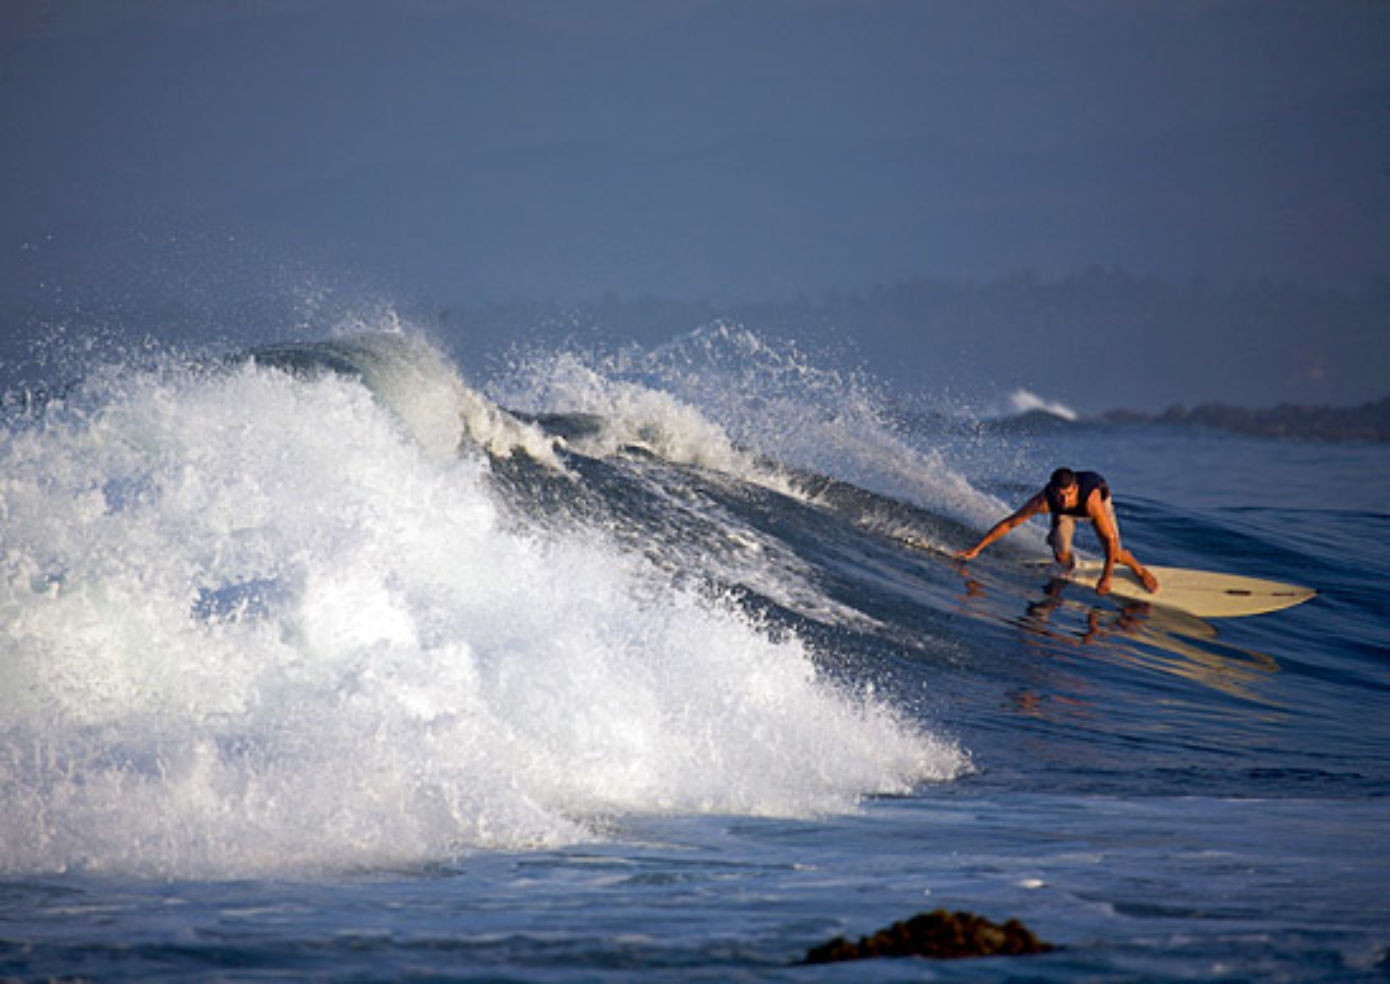 For surfers, the Inn at Manzanillo Bay has a private point break with consistent waves most of the year.